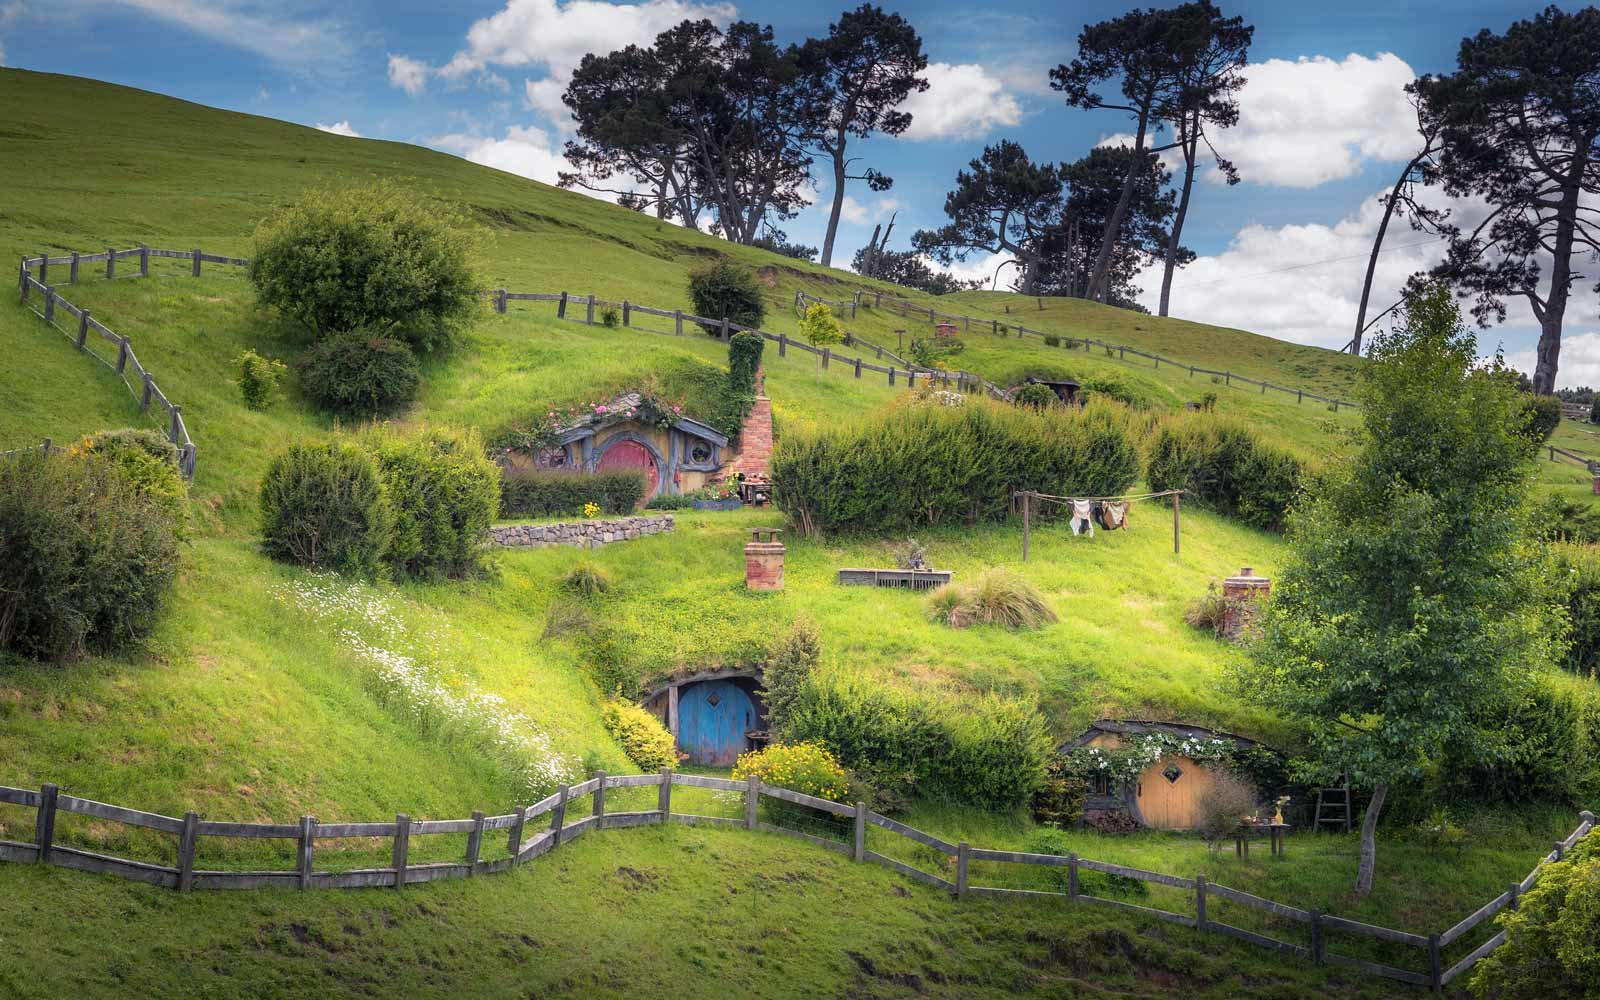 Classic Fall Wallpaper Lord Of The Rings Comes To Life For New Zealand Tourists